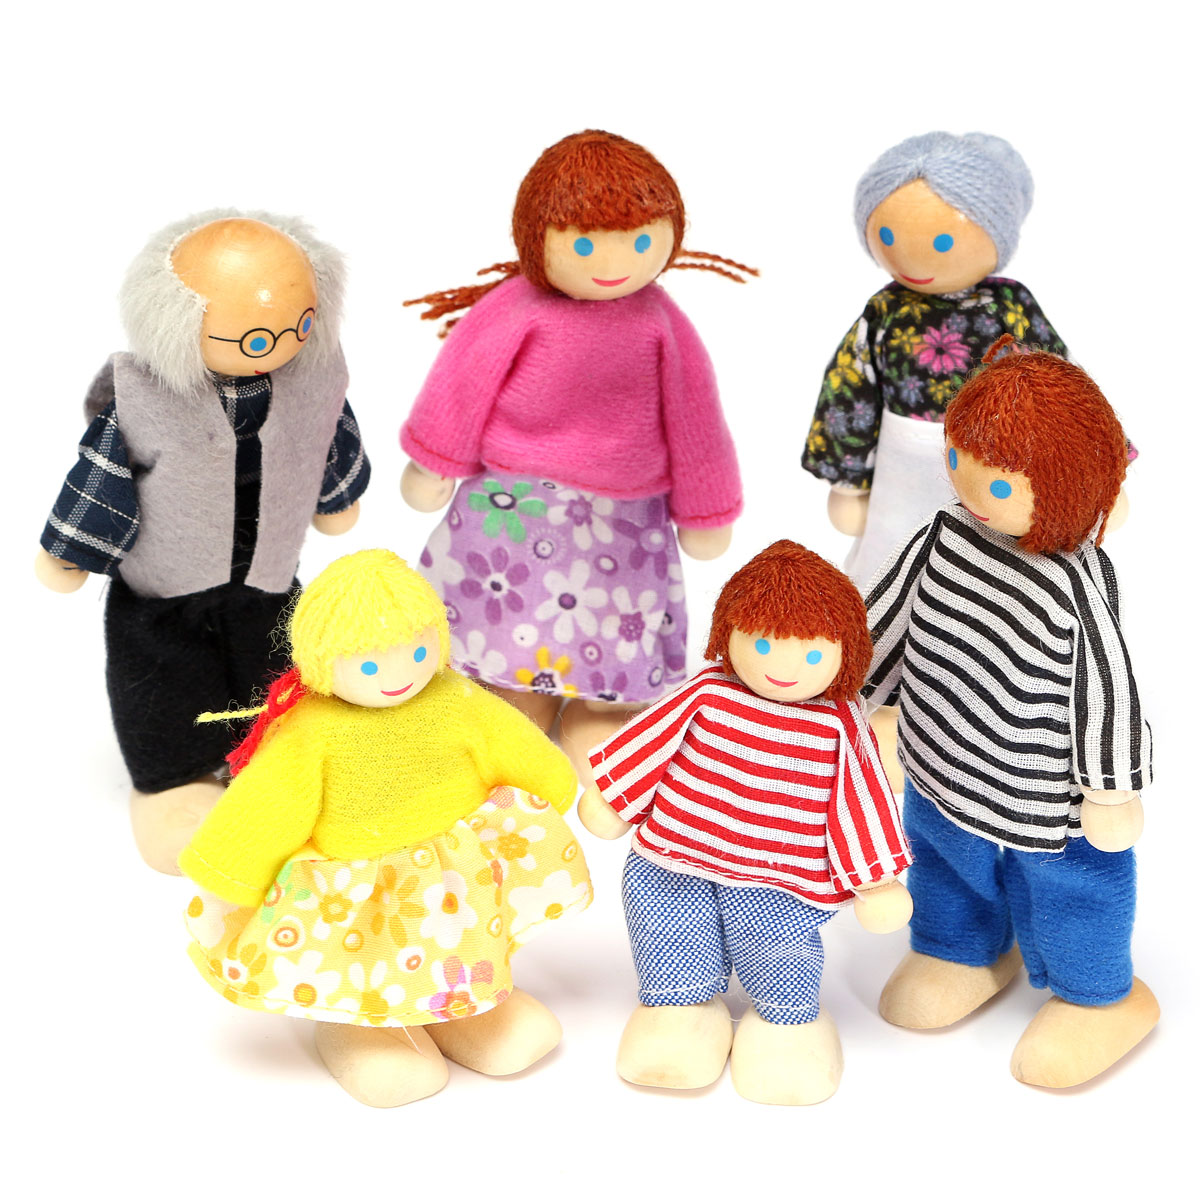 Asewin Funmily Poseable Happy Wooden Doll Family of 6 People Cute Dollhouse Accessories Figures